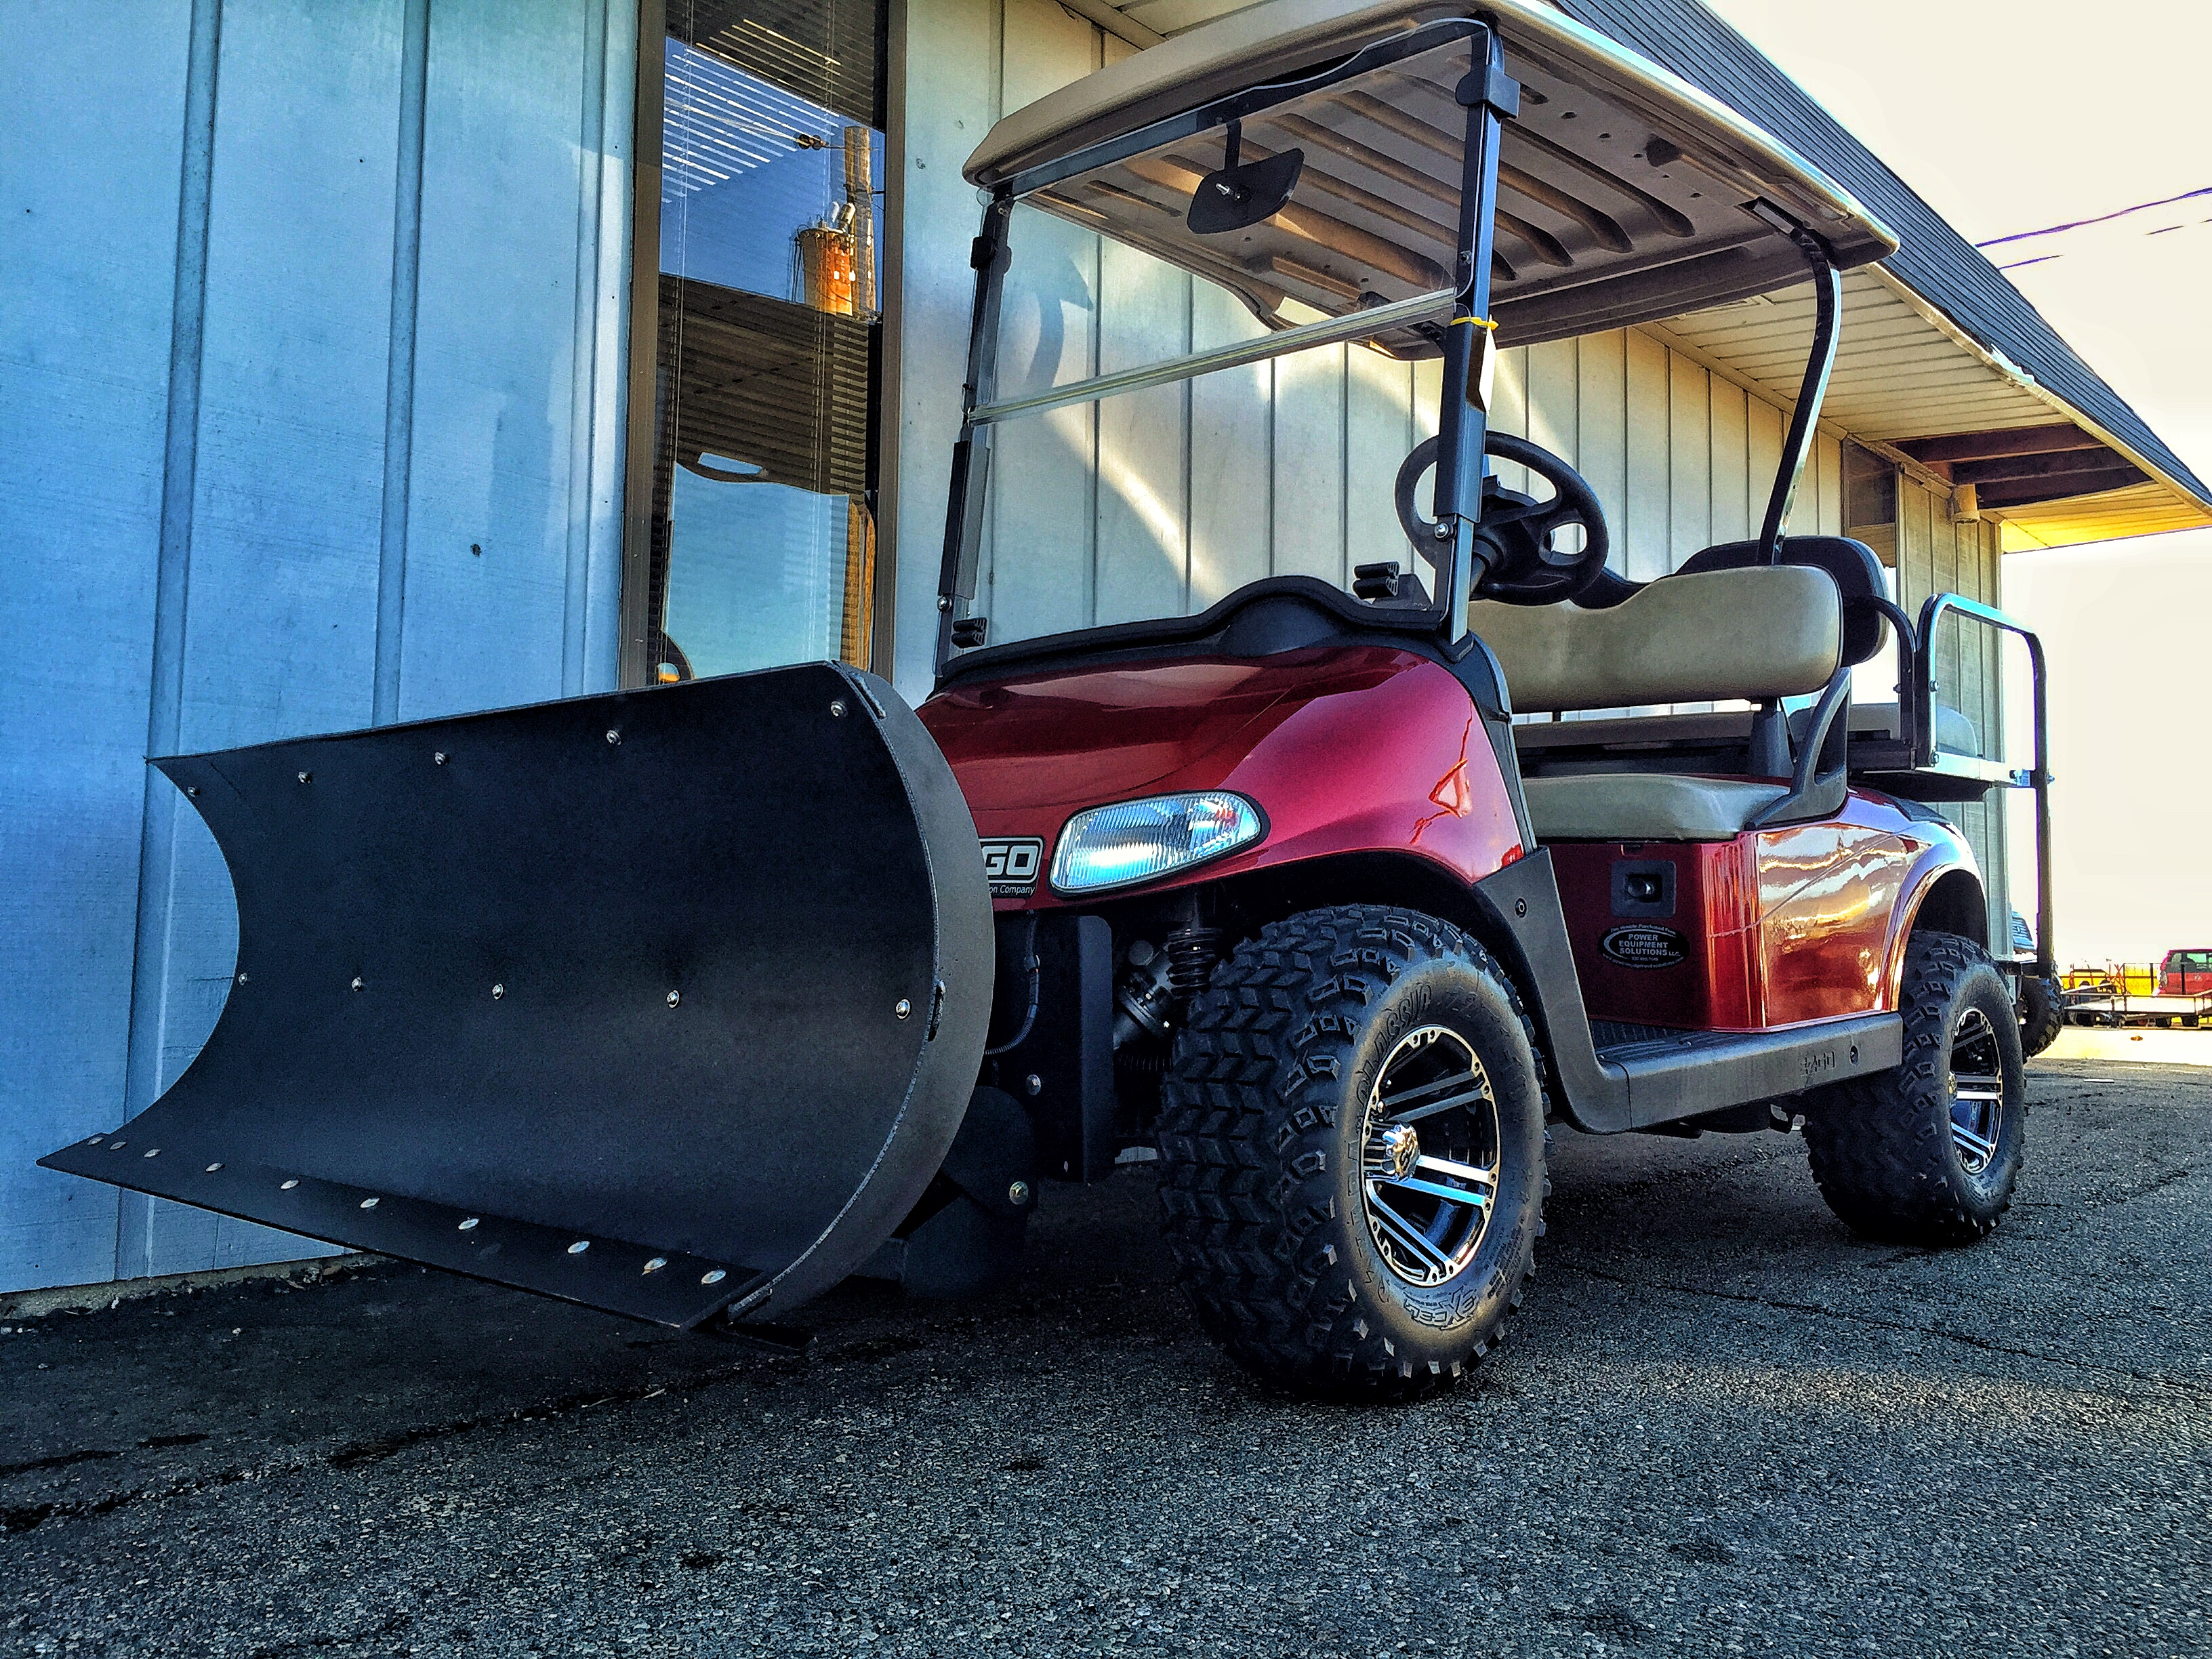 2010 E-Z-GO RXV WITH PES SNOWPLOW AND POWER STEERING KIT | New ... on commercial golf carts, gas golf carts, custom golf carts, utility golf carts, solar panels for golf carts, used golf carts, john deere golf carts, luxury golf carts, hot golf carts, dodge golf carts, polaris golf carts, lifted golf carts, accessories golf carts, ebay golf carts, electric golf carts, concept golf carts, ezgo hunting carts, yamaha golf carts, honda golf carts, golf push carts,